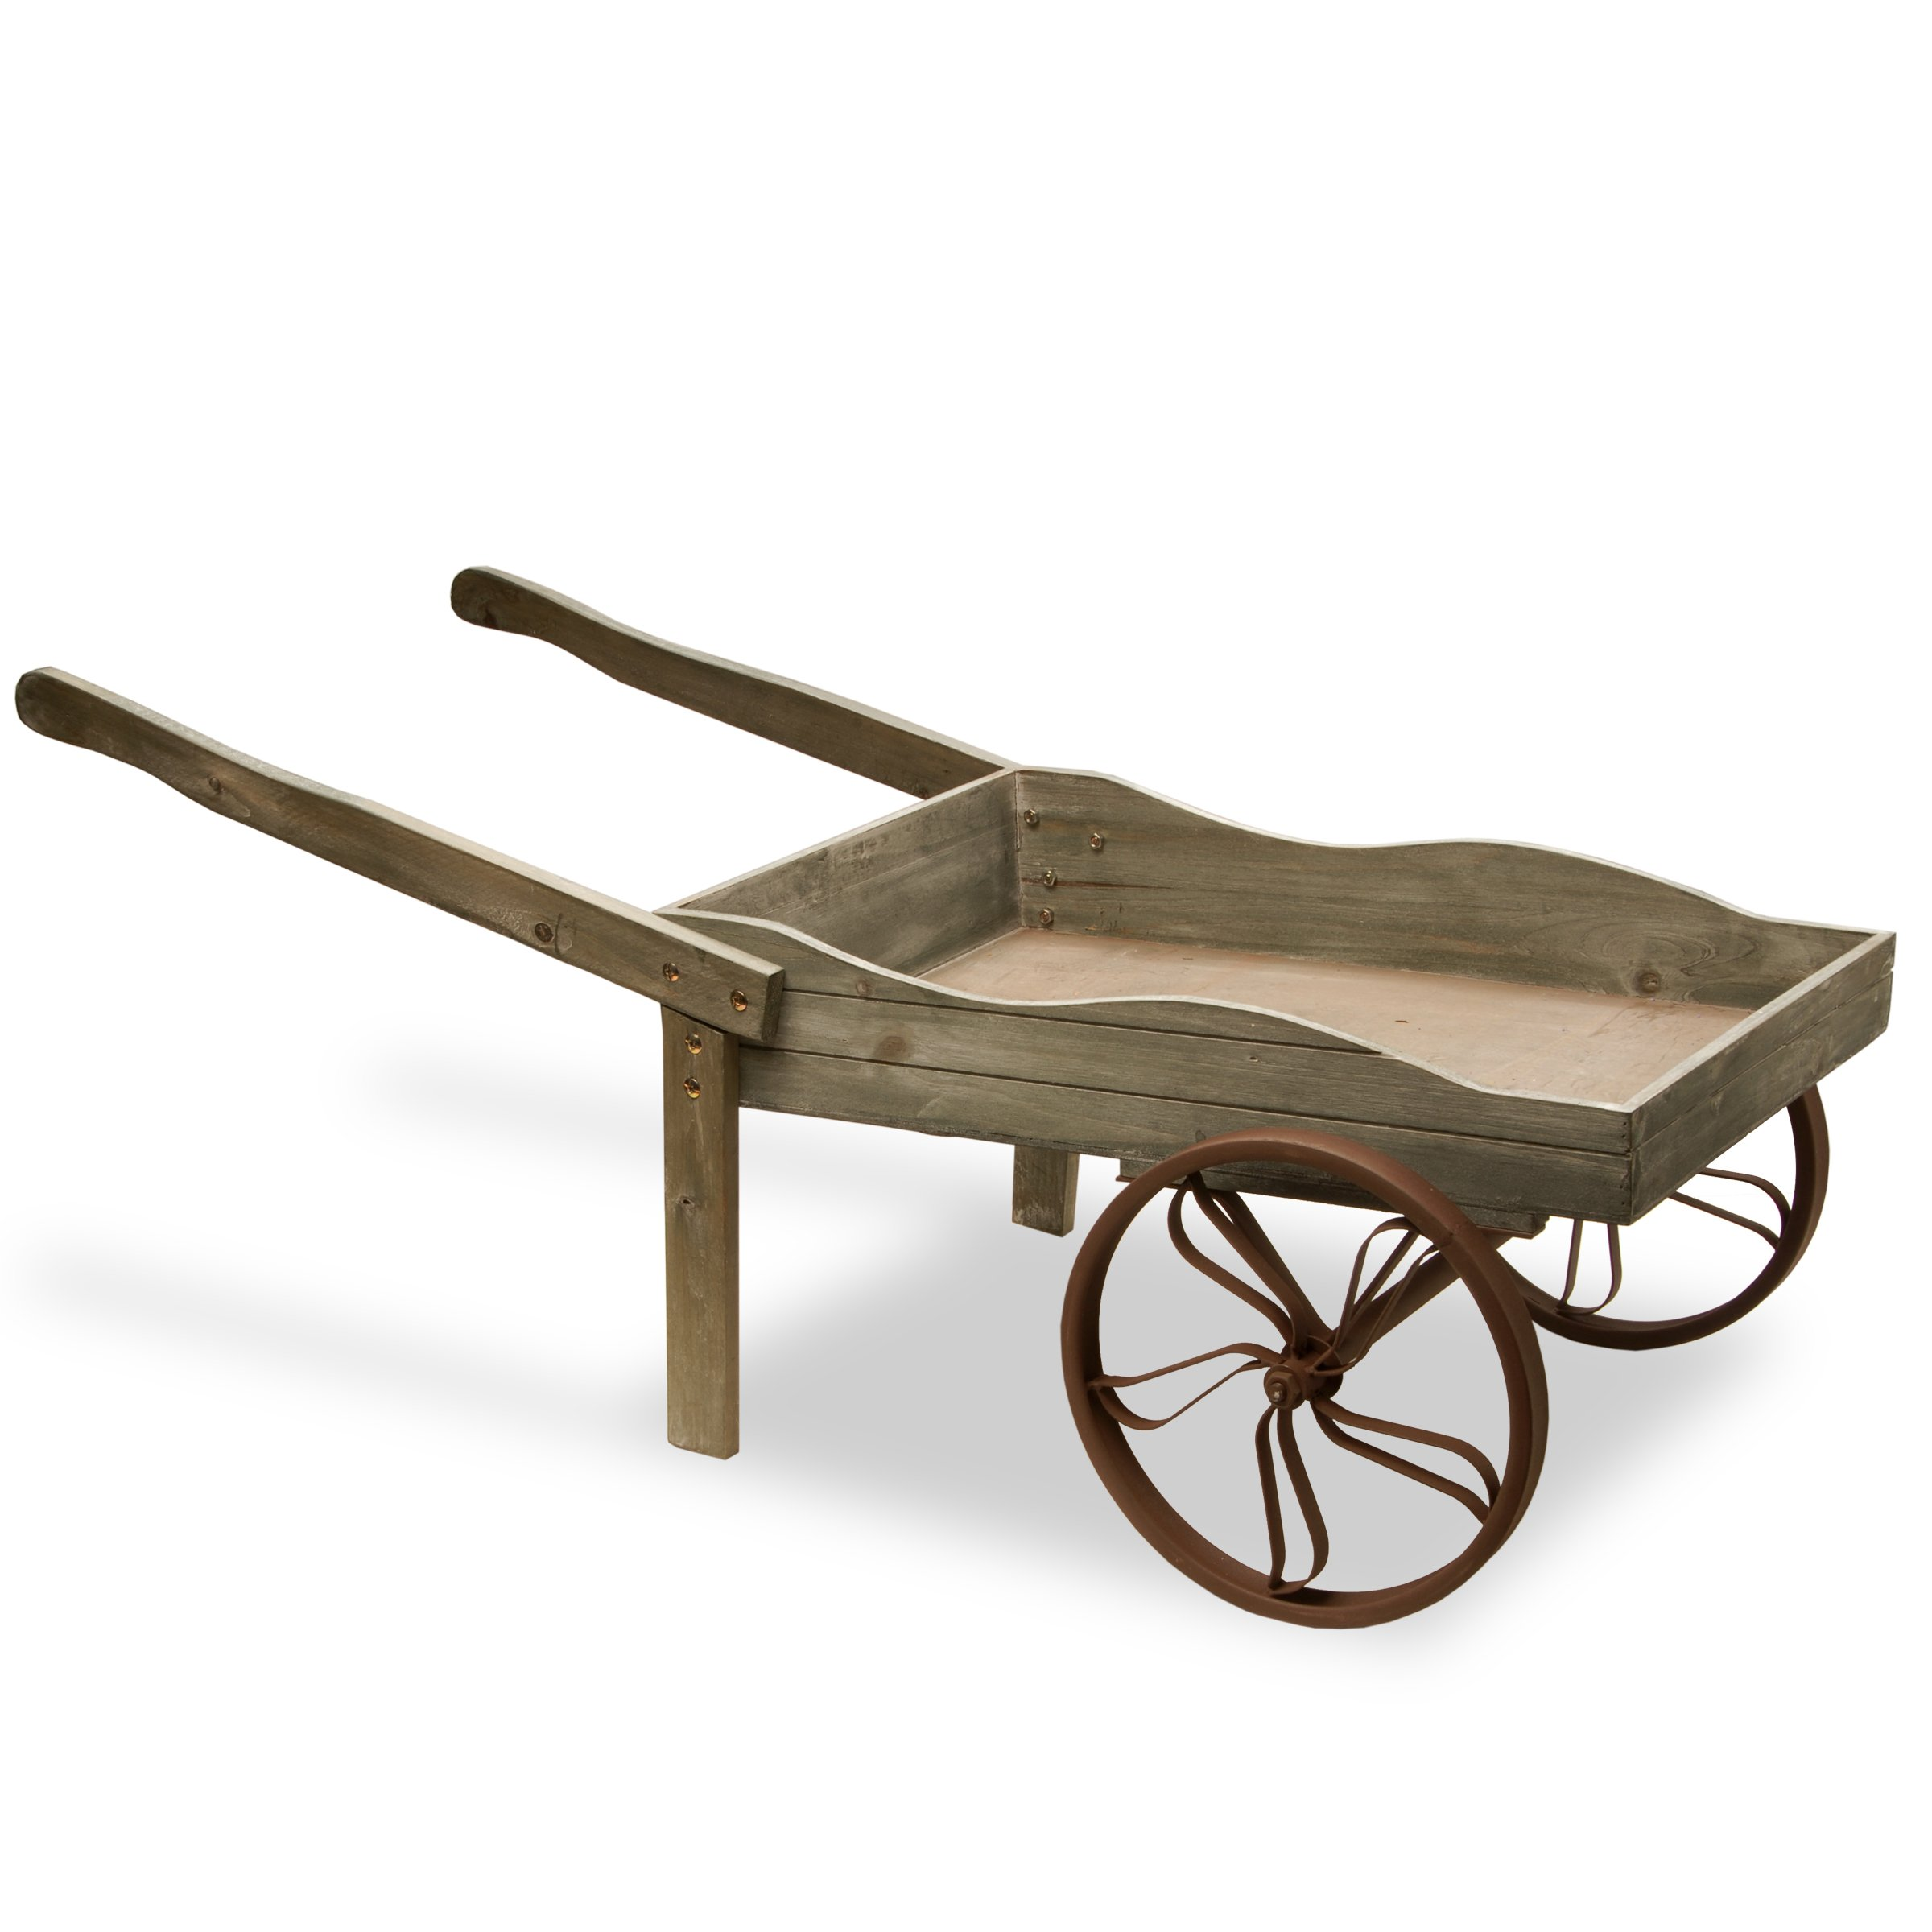 National Tree 43 Inch Garden Accents Light Grey Wooden Garden Cart (GAGC30-43G) by National Tree Company